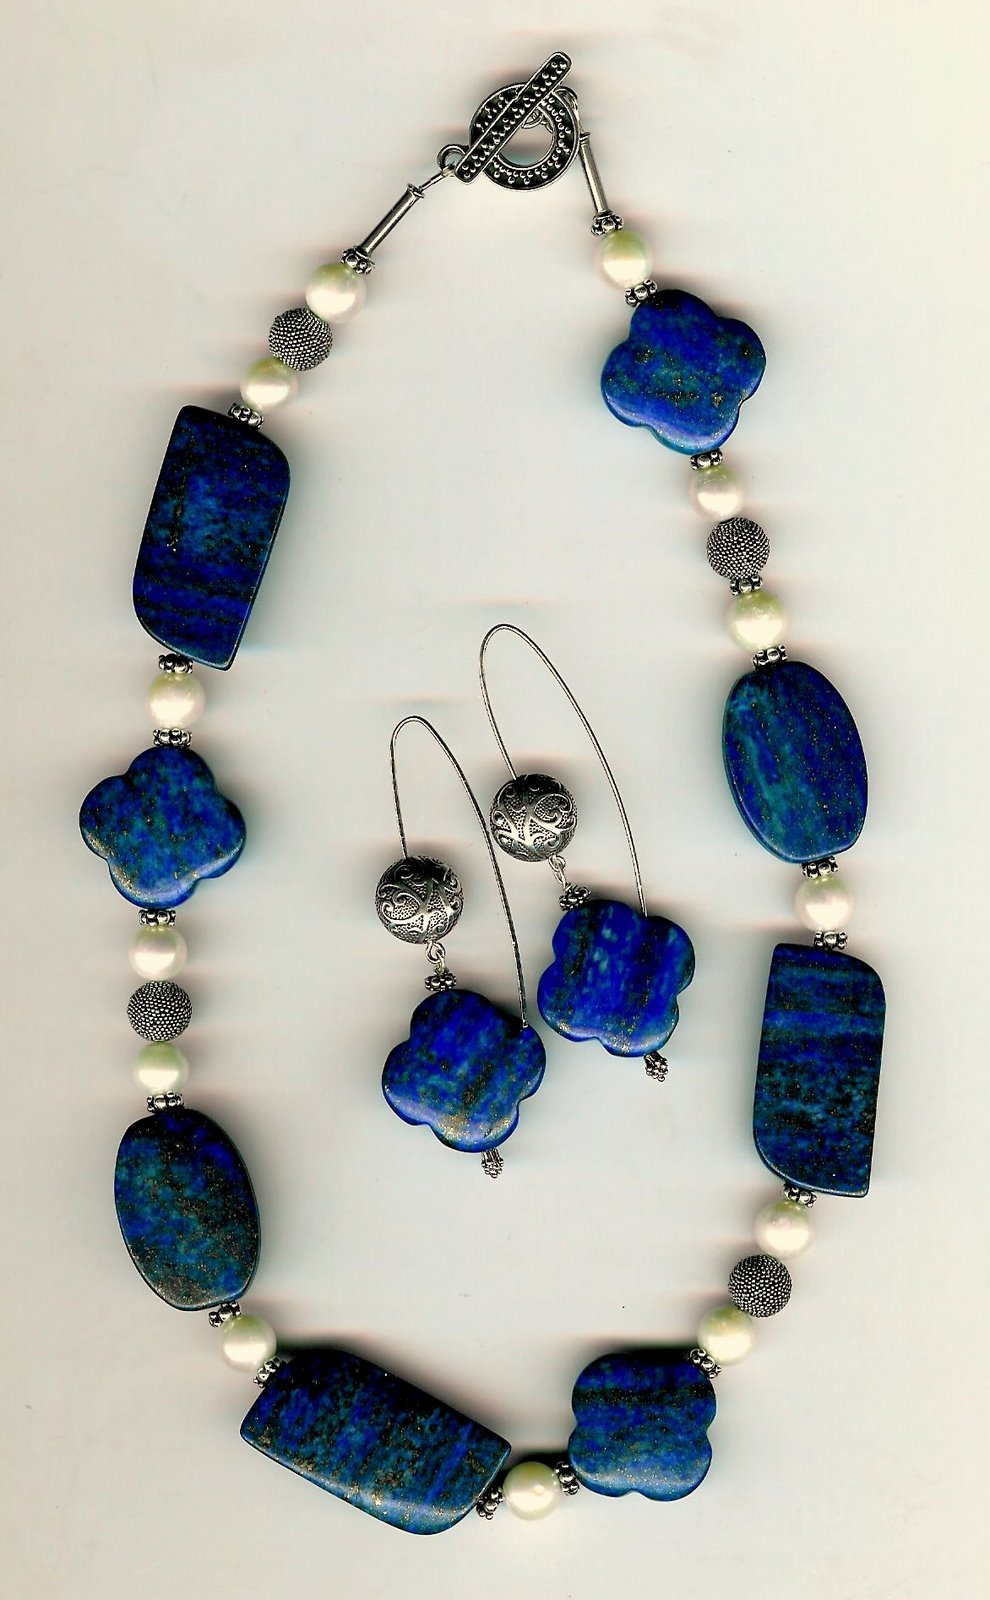 111. Carved Lapis Lazuli, Freshwater Pearls with Bali Sterling Silver + Earrings